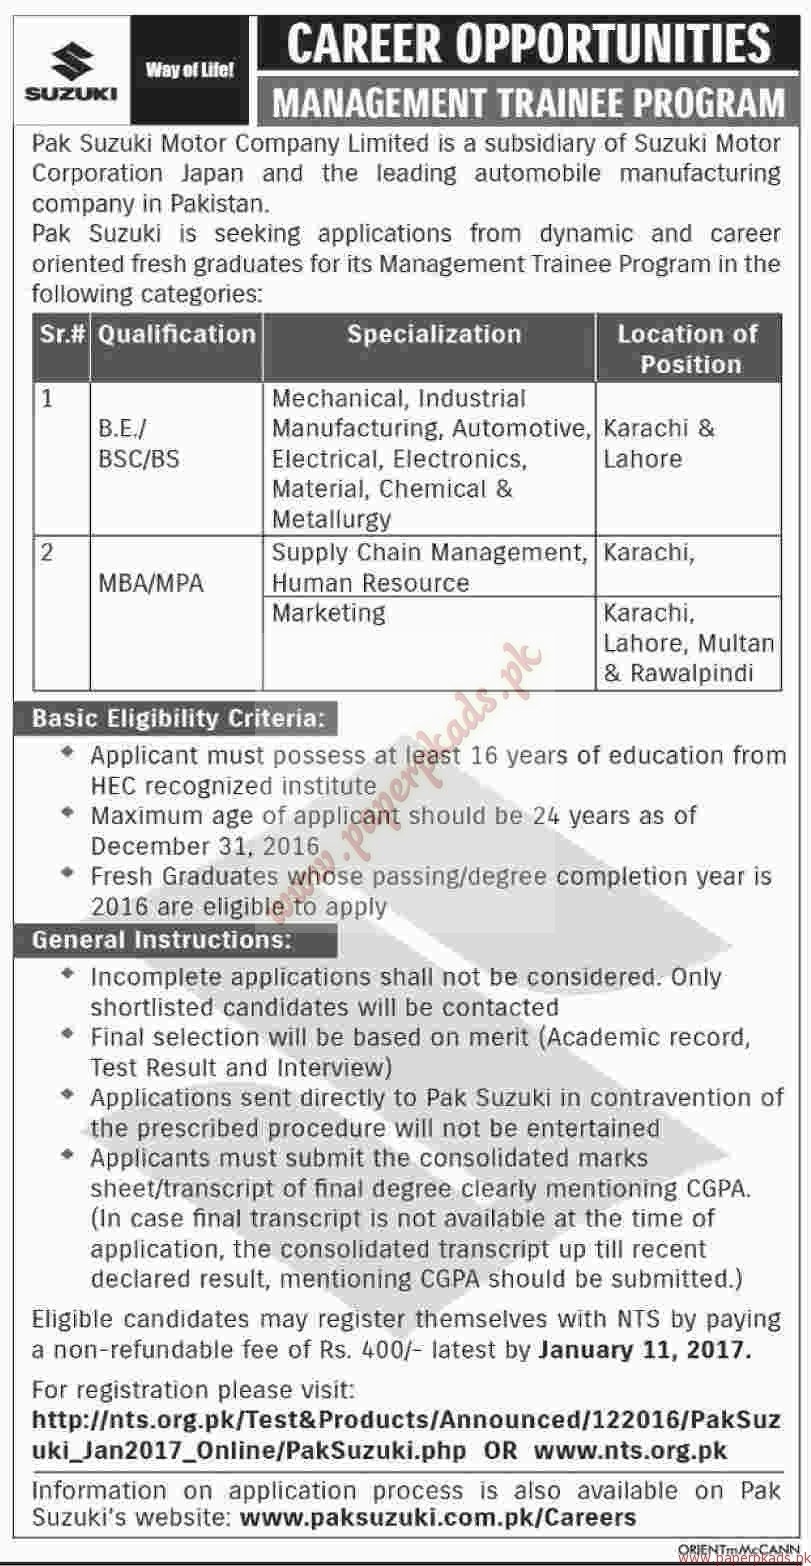 Pak Suzuki Motor Company Limited Jobs - Dawn Jobs ads 01 January 2017